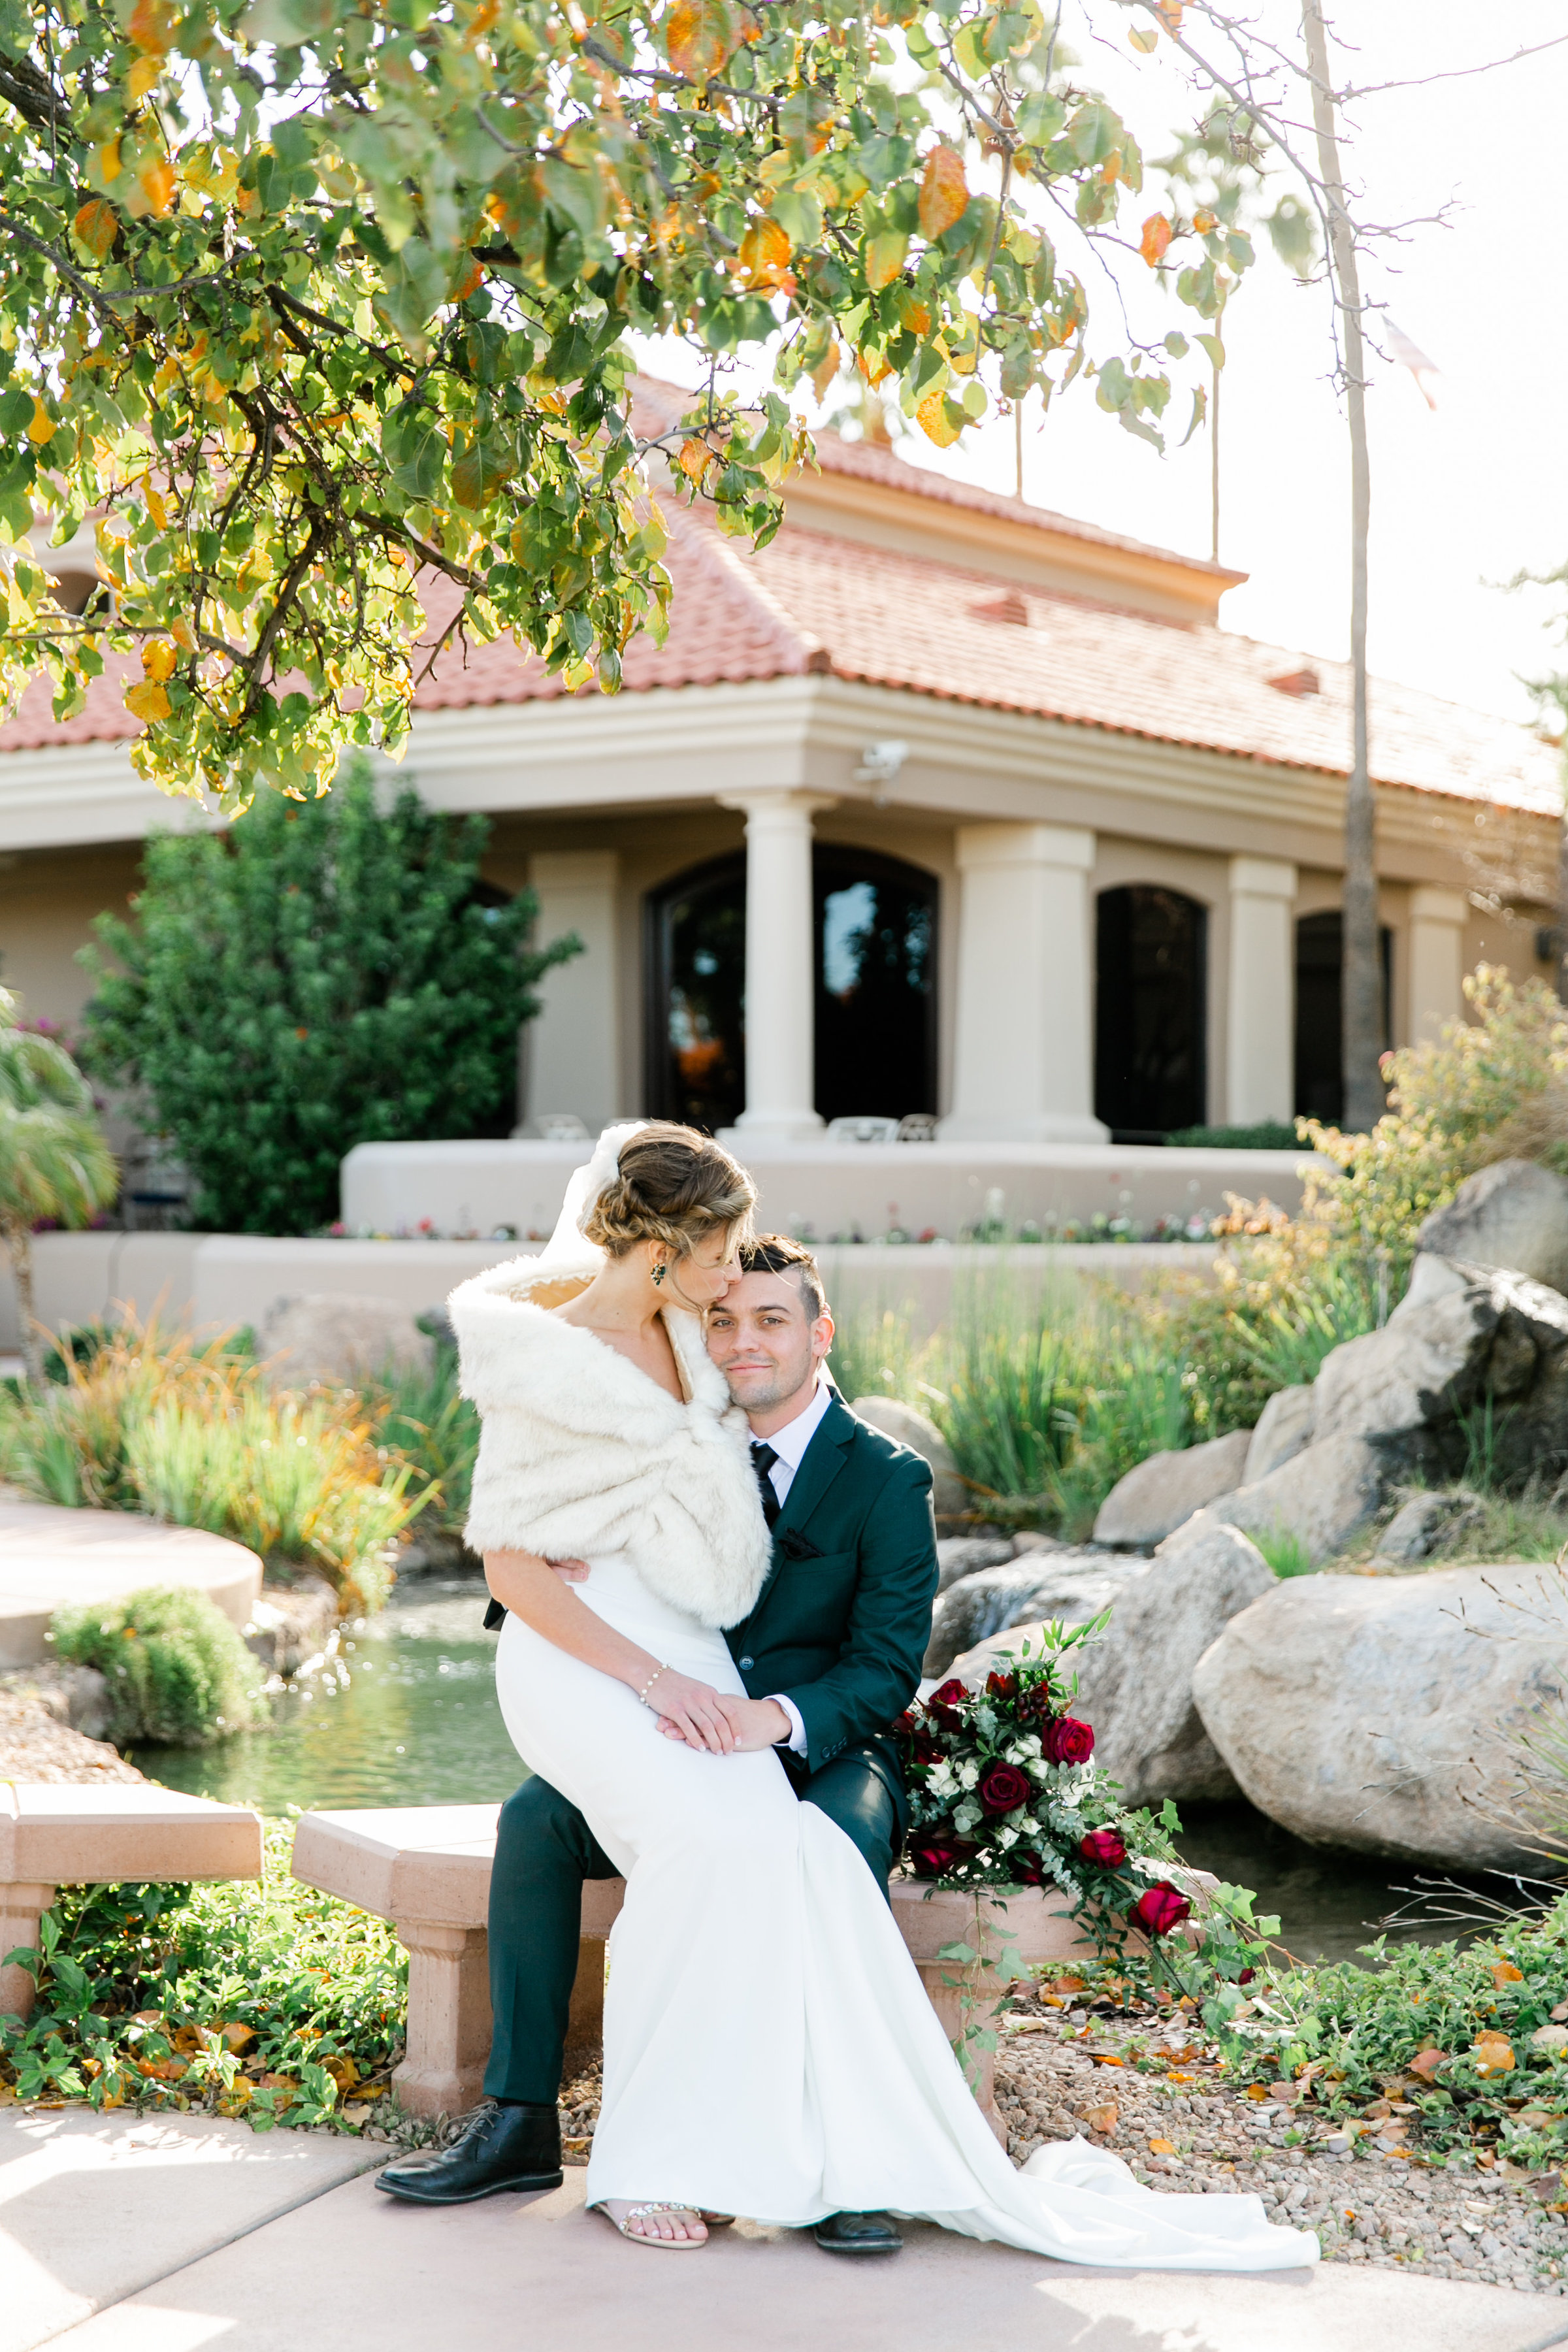 Karlie Colleen Photography - Gilbert Arizona Wedding - Val Vista Lakes - Brynne & Josh-459